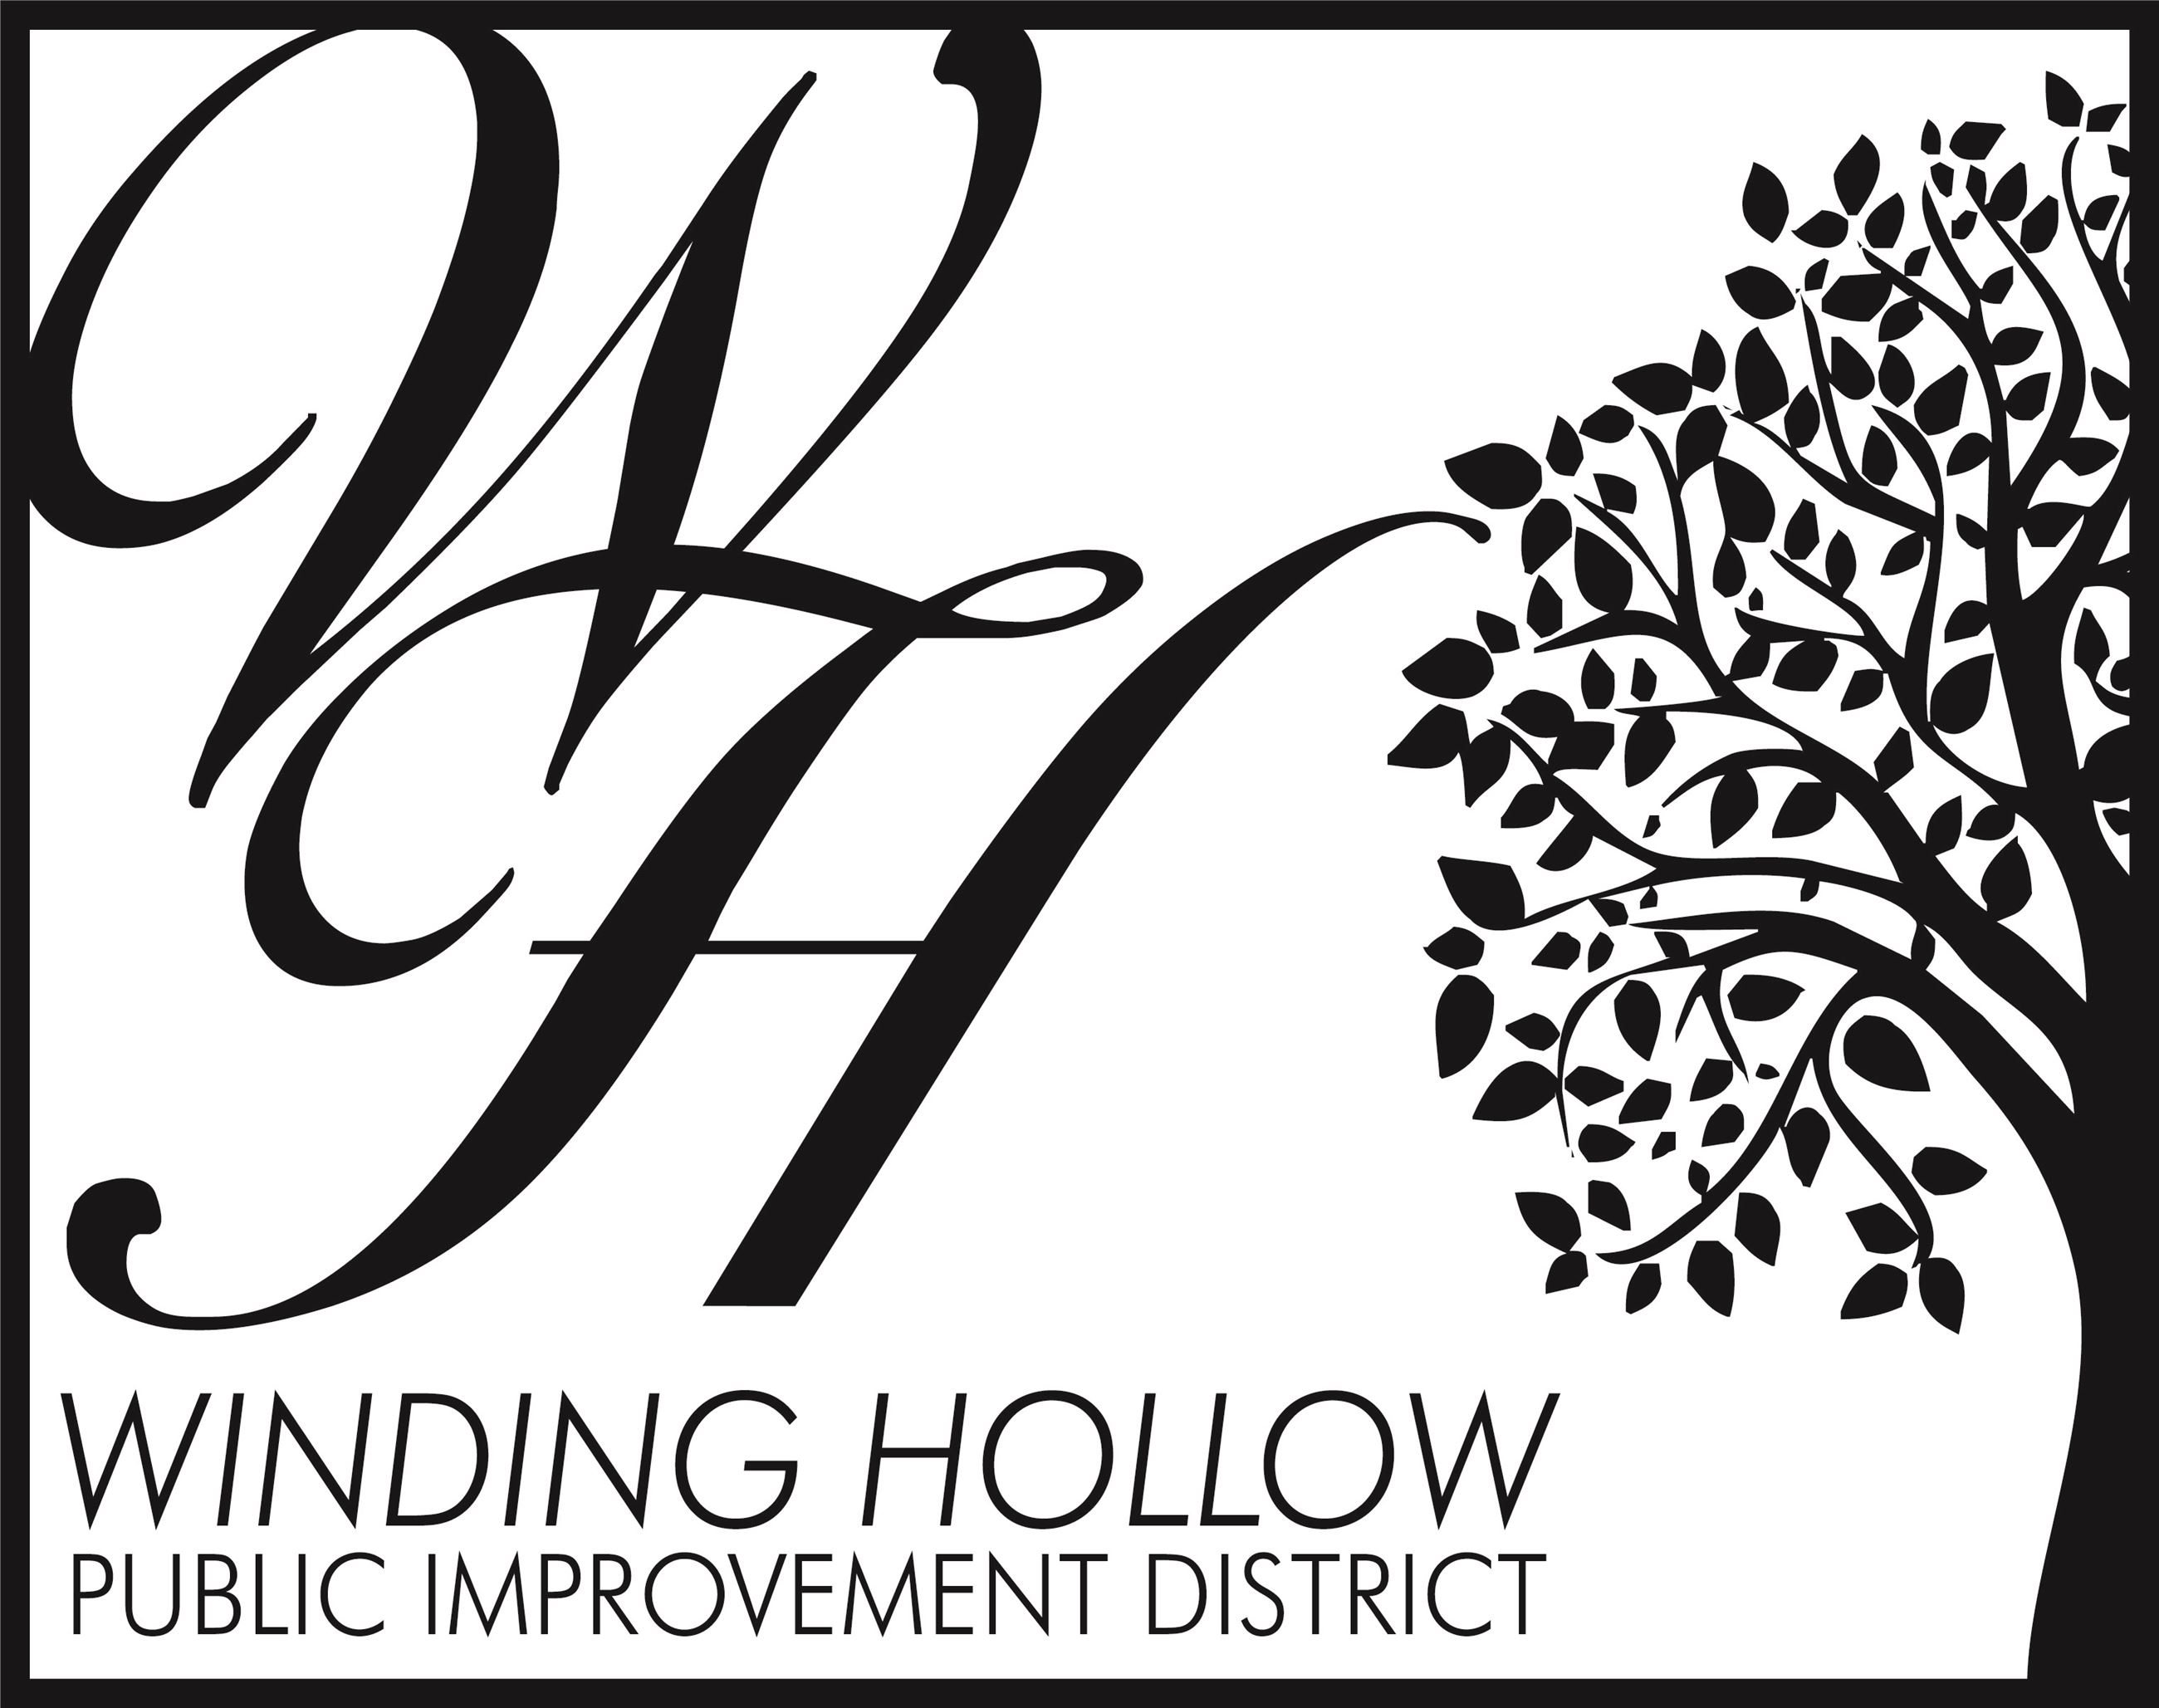 Winding Hollow PID logo